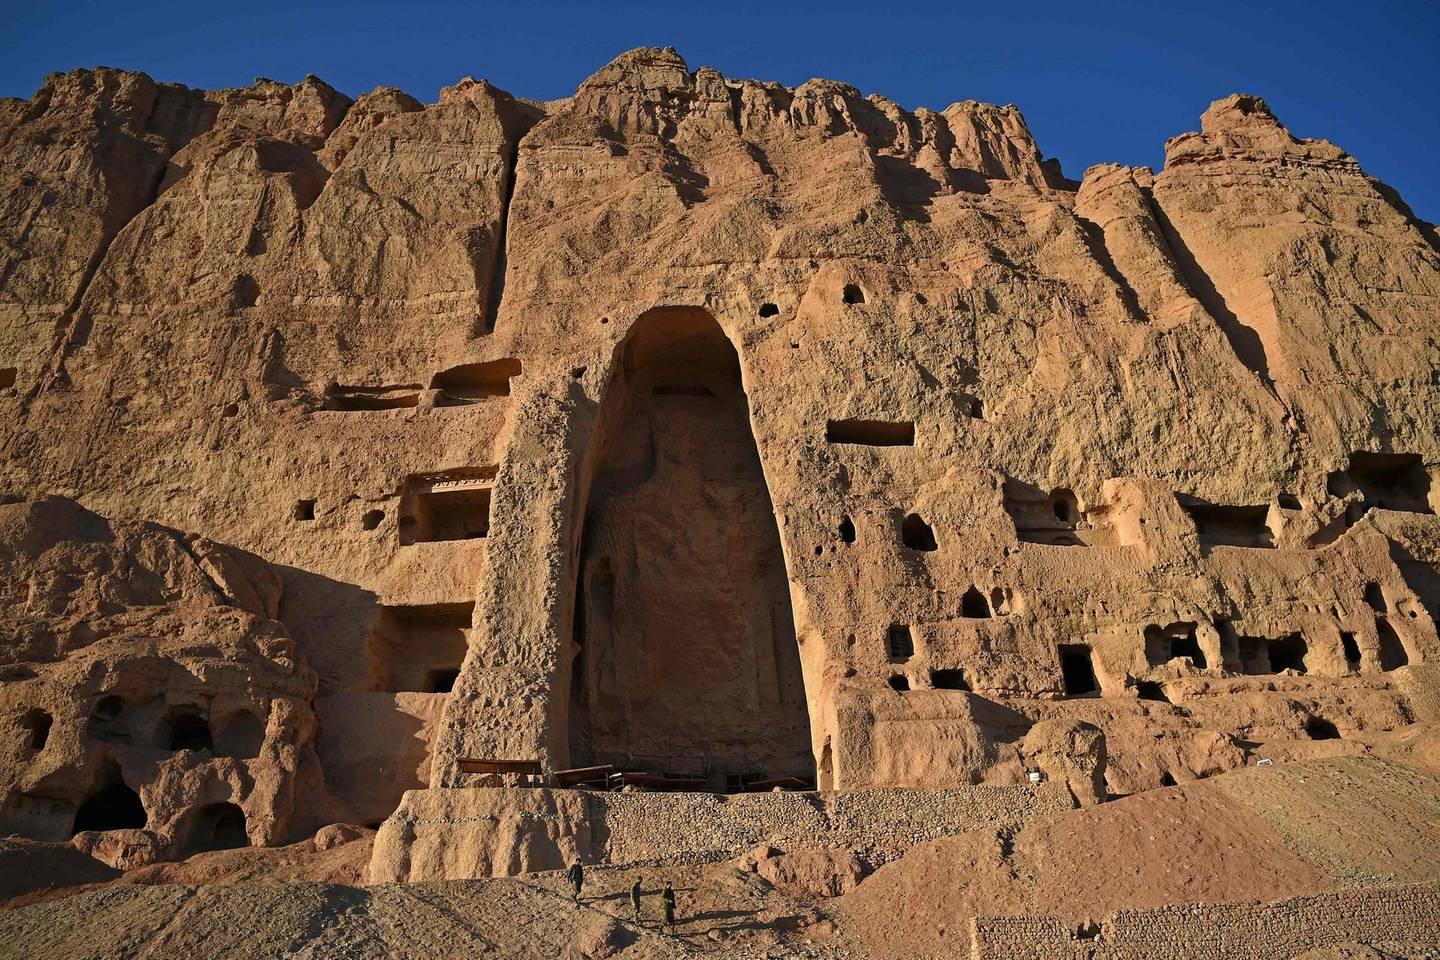 In this picture taken on March 4, 2021, visitors walk at the site of the Buddhas of Bamiyan statues, which were destroyed by the Taliban in 2001, in Bamiyan province. Afghanistan's giant Buddhas stood watch over the picturesque Bamiyan valley for centuries, surviving Mongol invasions and the harsh environment until the Taliban arrived with an apocalyptic worldview that did not care about one of the great wonders of antiquity. - TO GO WITH FOCUS 'AFGHANISTAN-RELIGION-HISTORY-TALIBAN-BUDDHA-STATUES' by USMAN SHARIFI  / AFP / WAKIL KOHSAR / TO GO WITH FOCUS 'AFGHANISTAN-RELIGION-HISTORY-TALIBAN-BUDDHA-STATUES' by USMAN SHARIFI